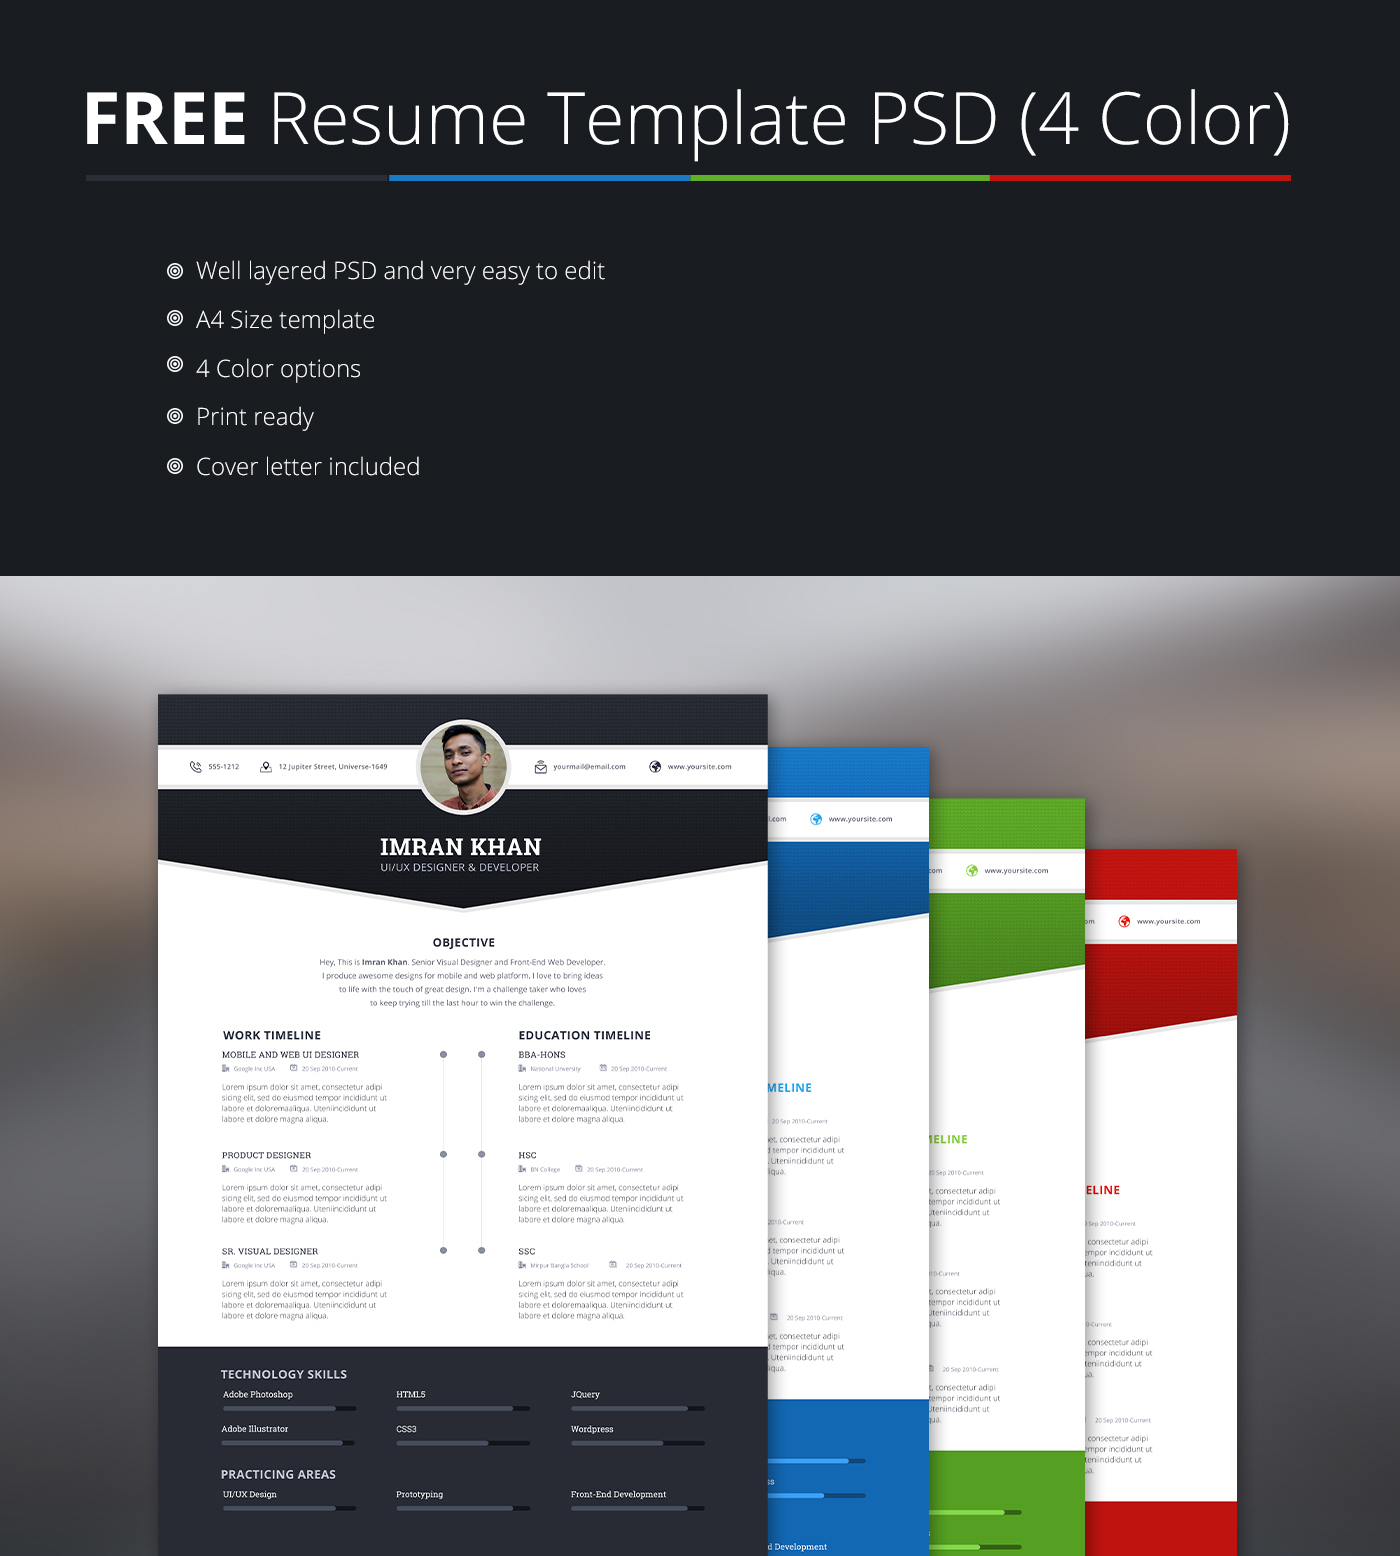 free resume template psd 4 colors on behance - Free Designer Resume Templates